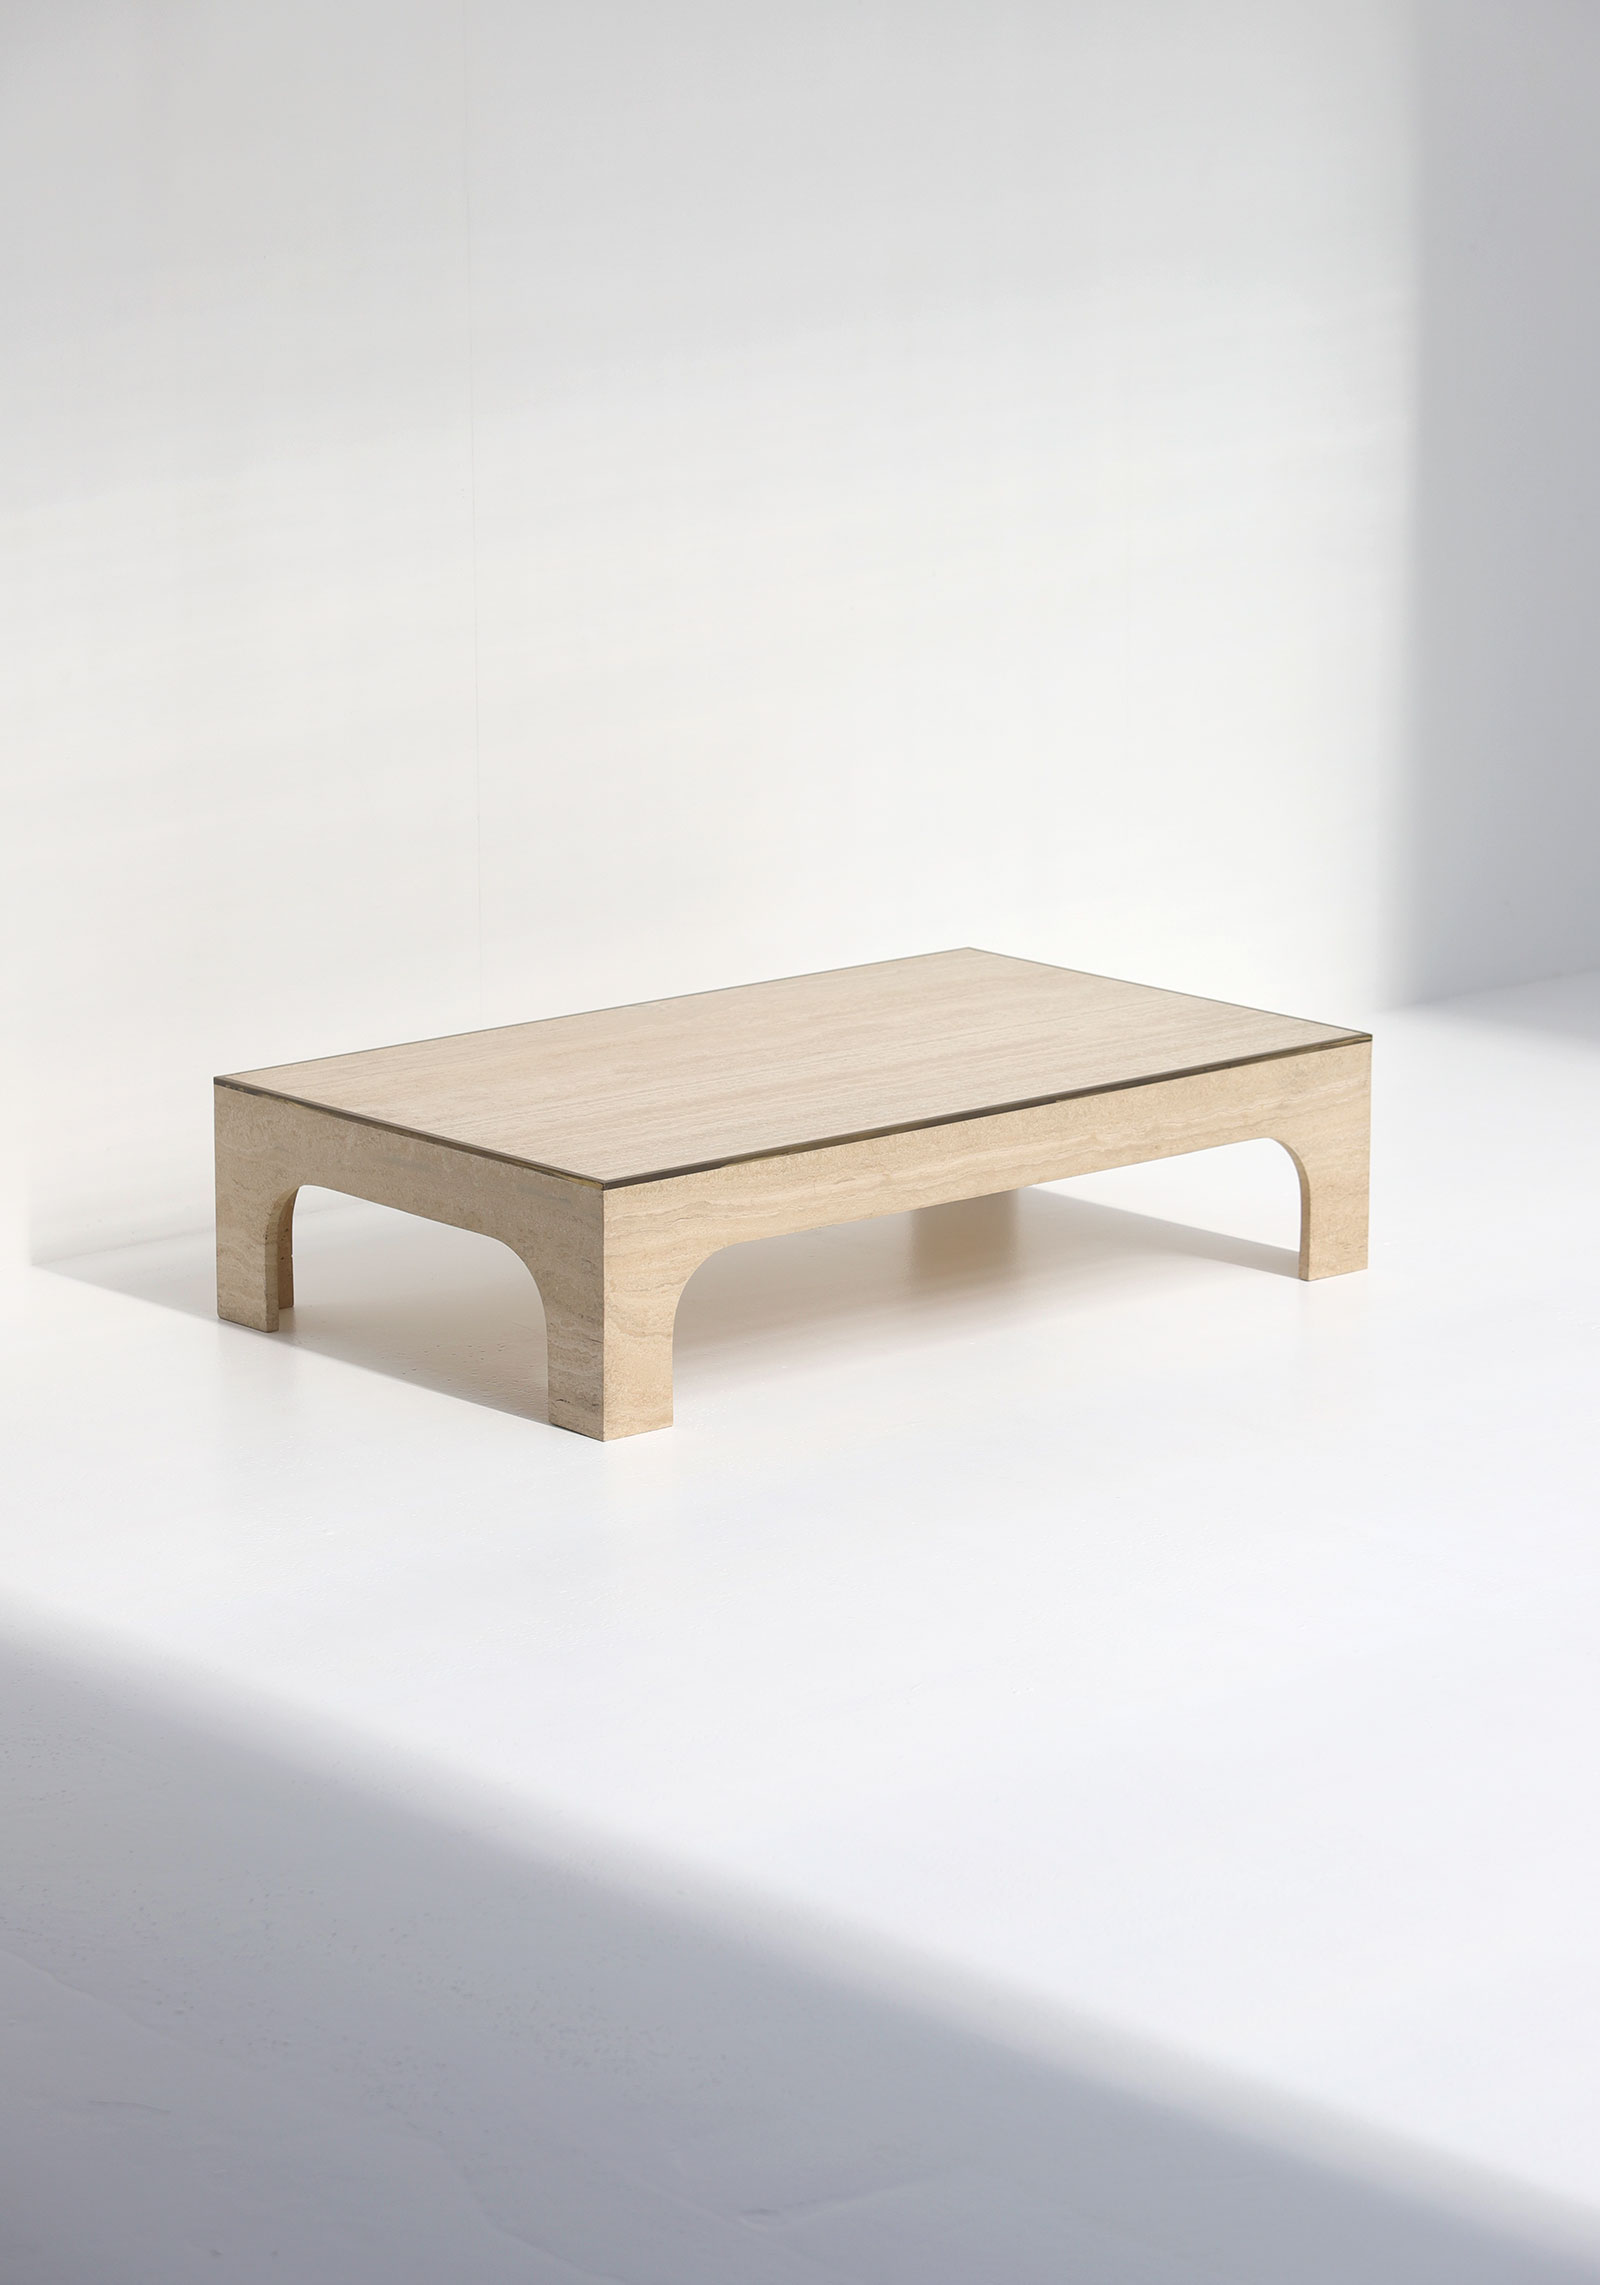 Decorative Willy Rizzo Travertin Coffee Table image 10